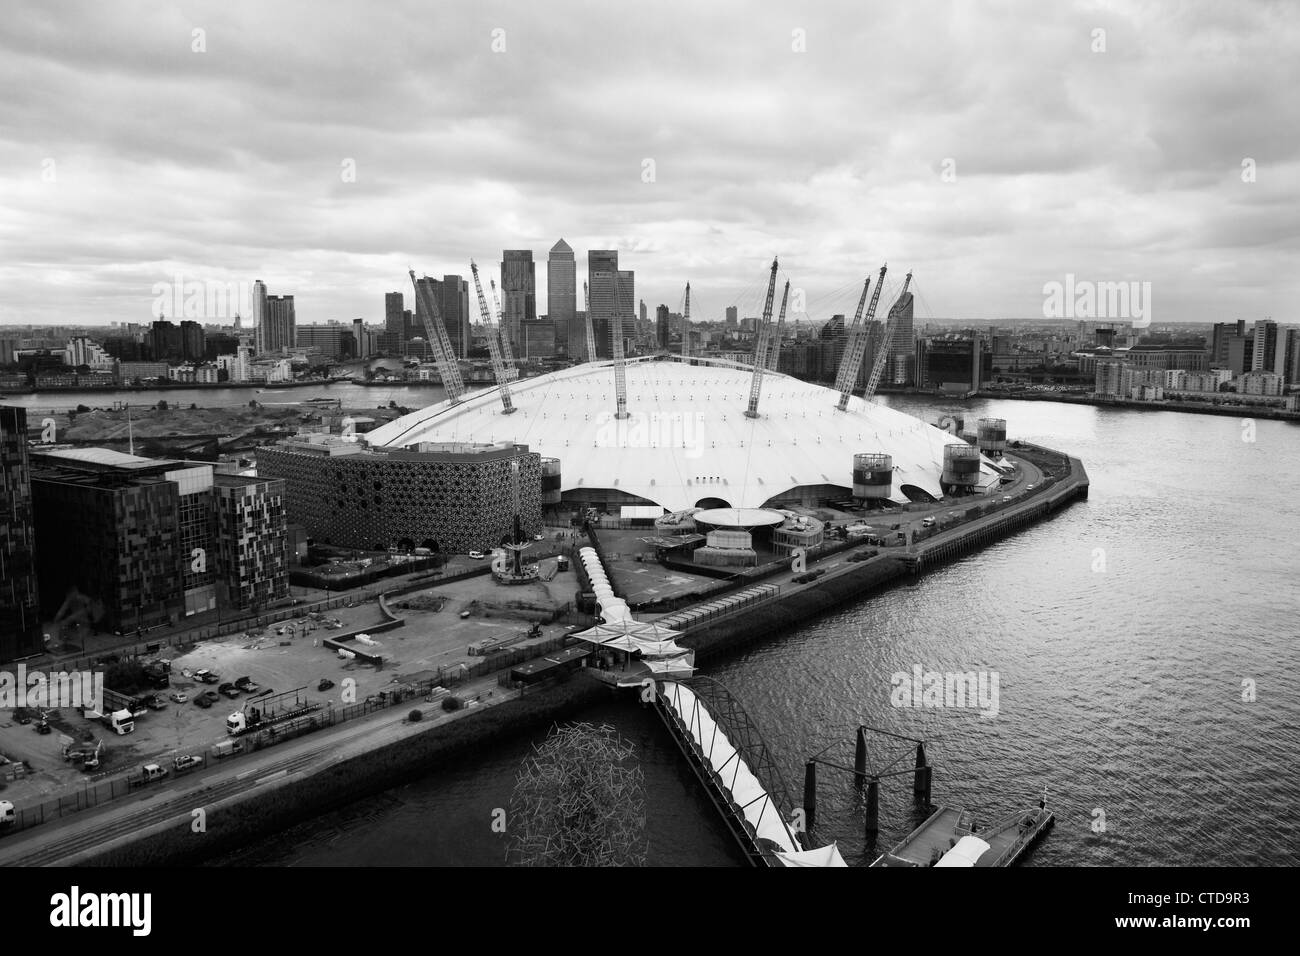 Aerial of O2 Arena on Greenwich Peninsula with Canary Wharf in background, London UK - Stock Image